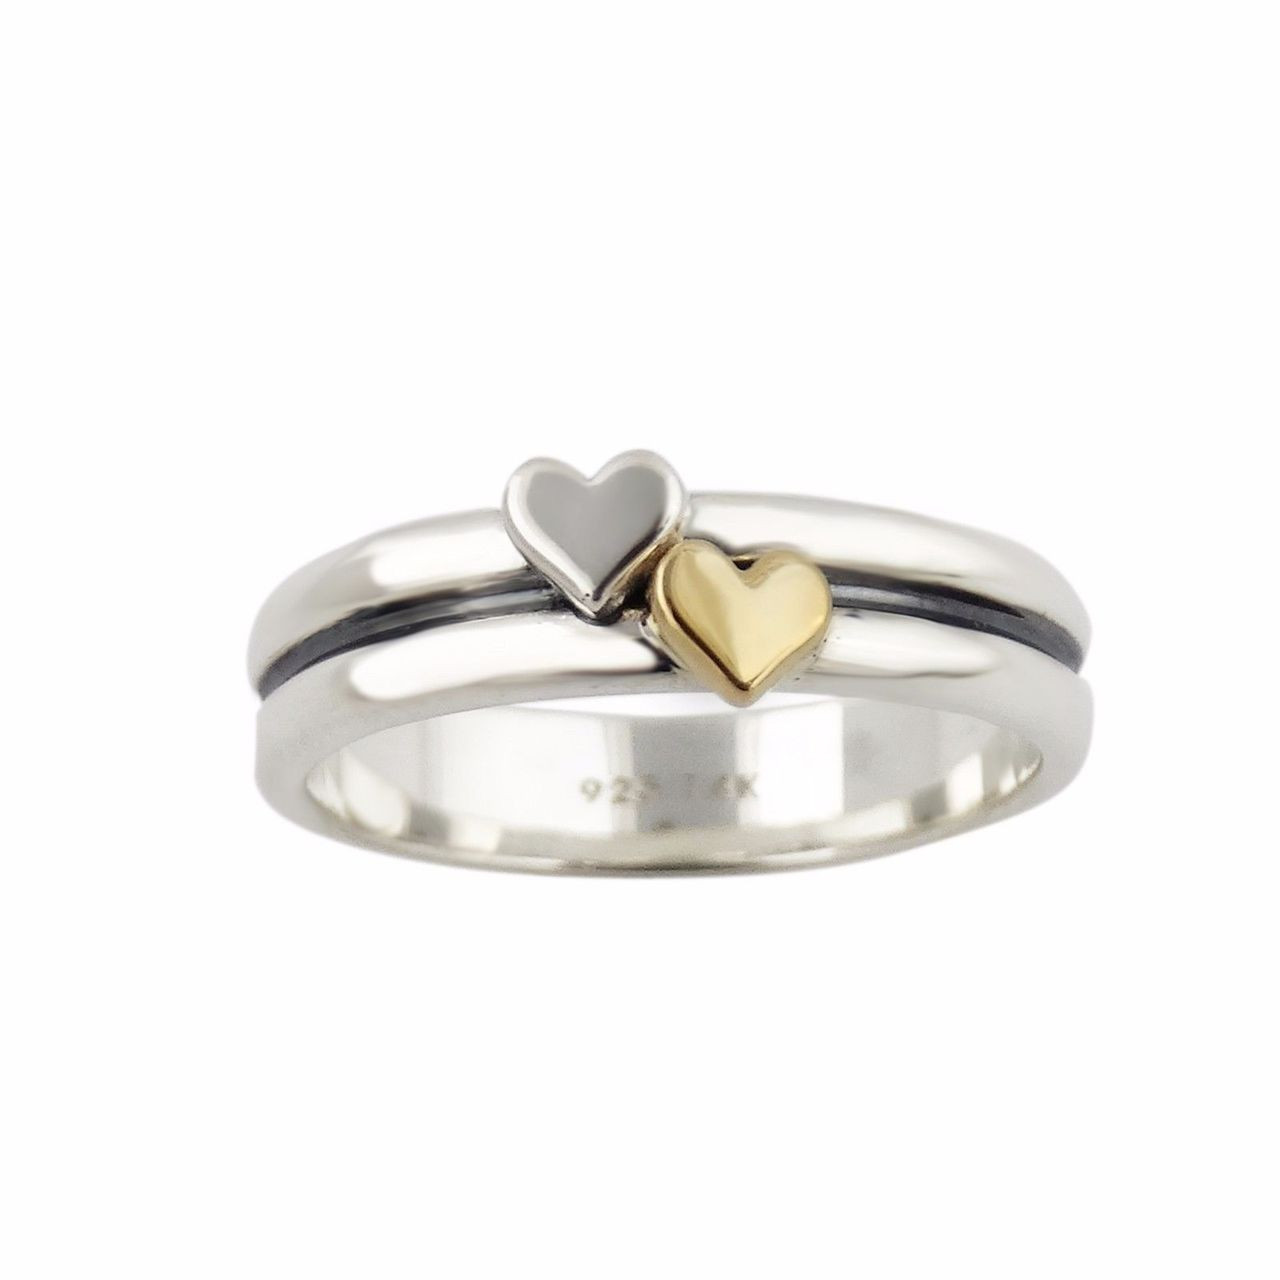 ac89df2e5bde2 Heart Ring - 925 Sterling Silver and 14K Gold Ring - *NEW* Multiple Sizes  Gift